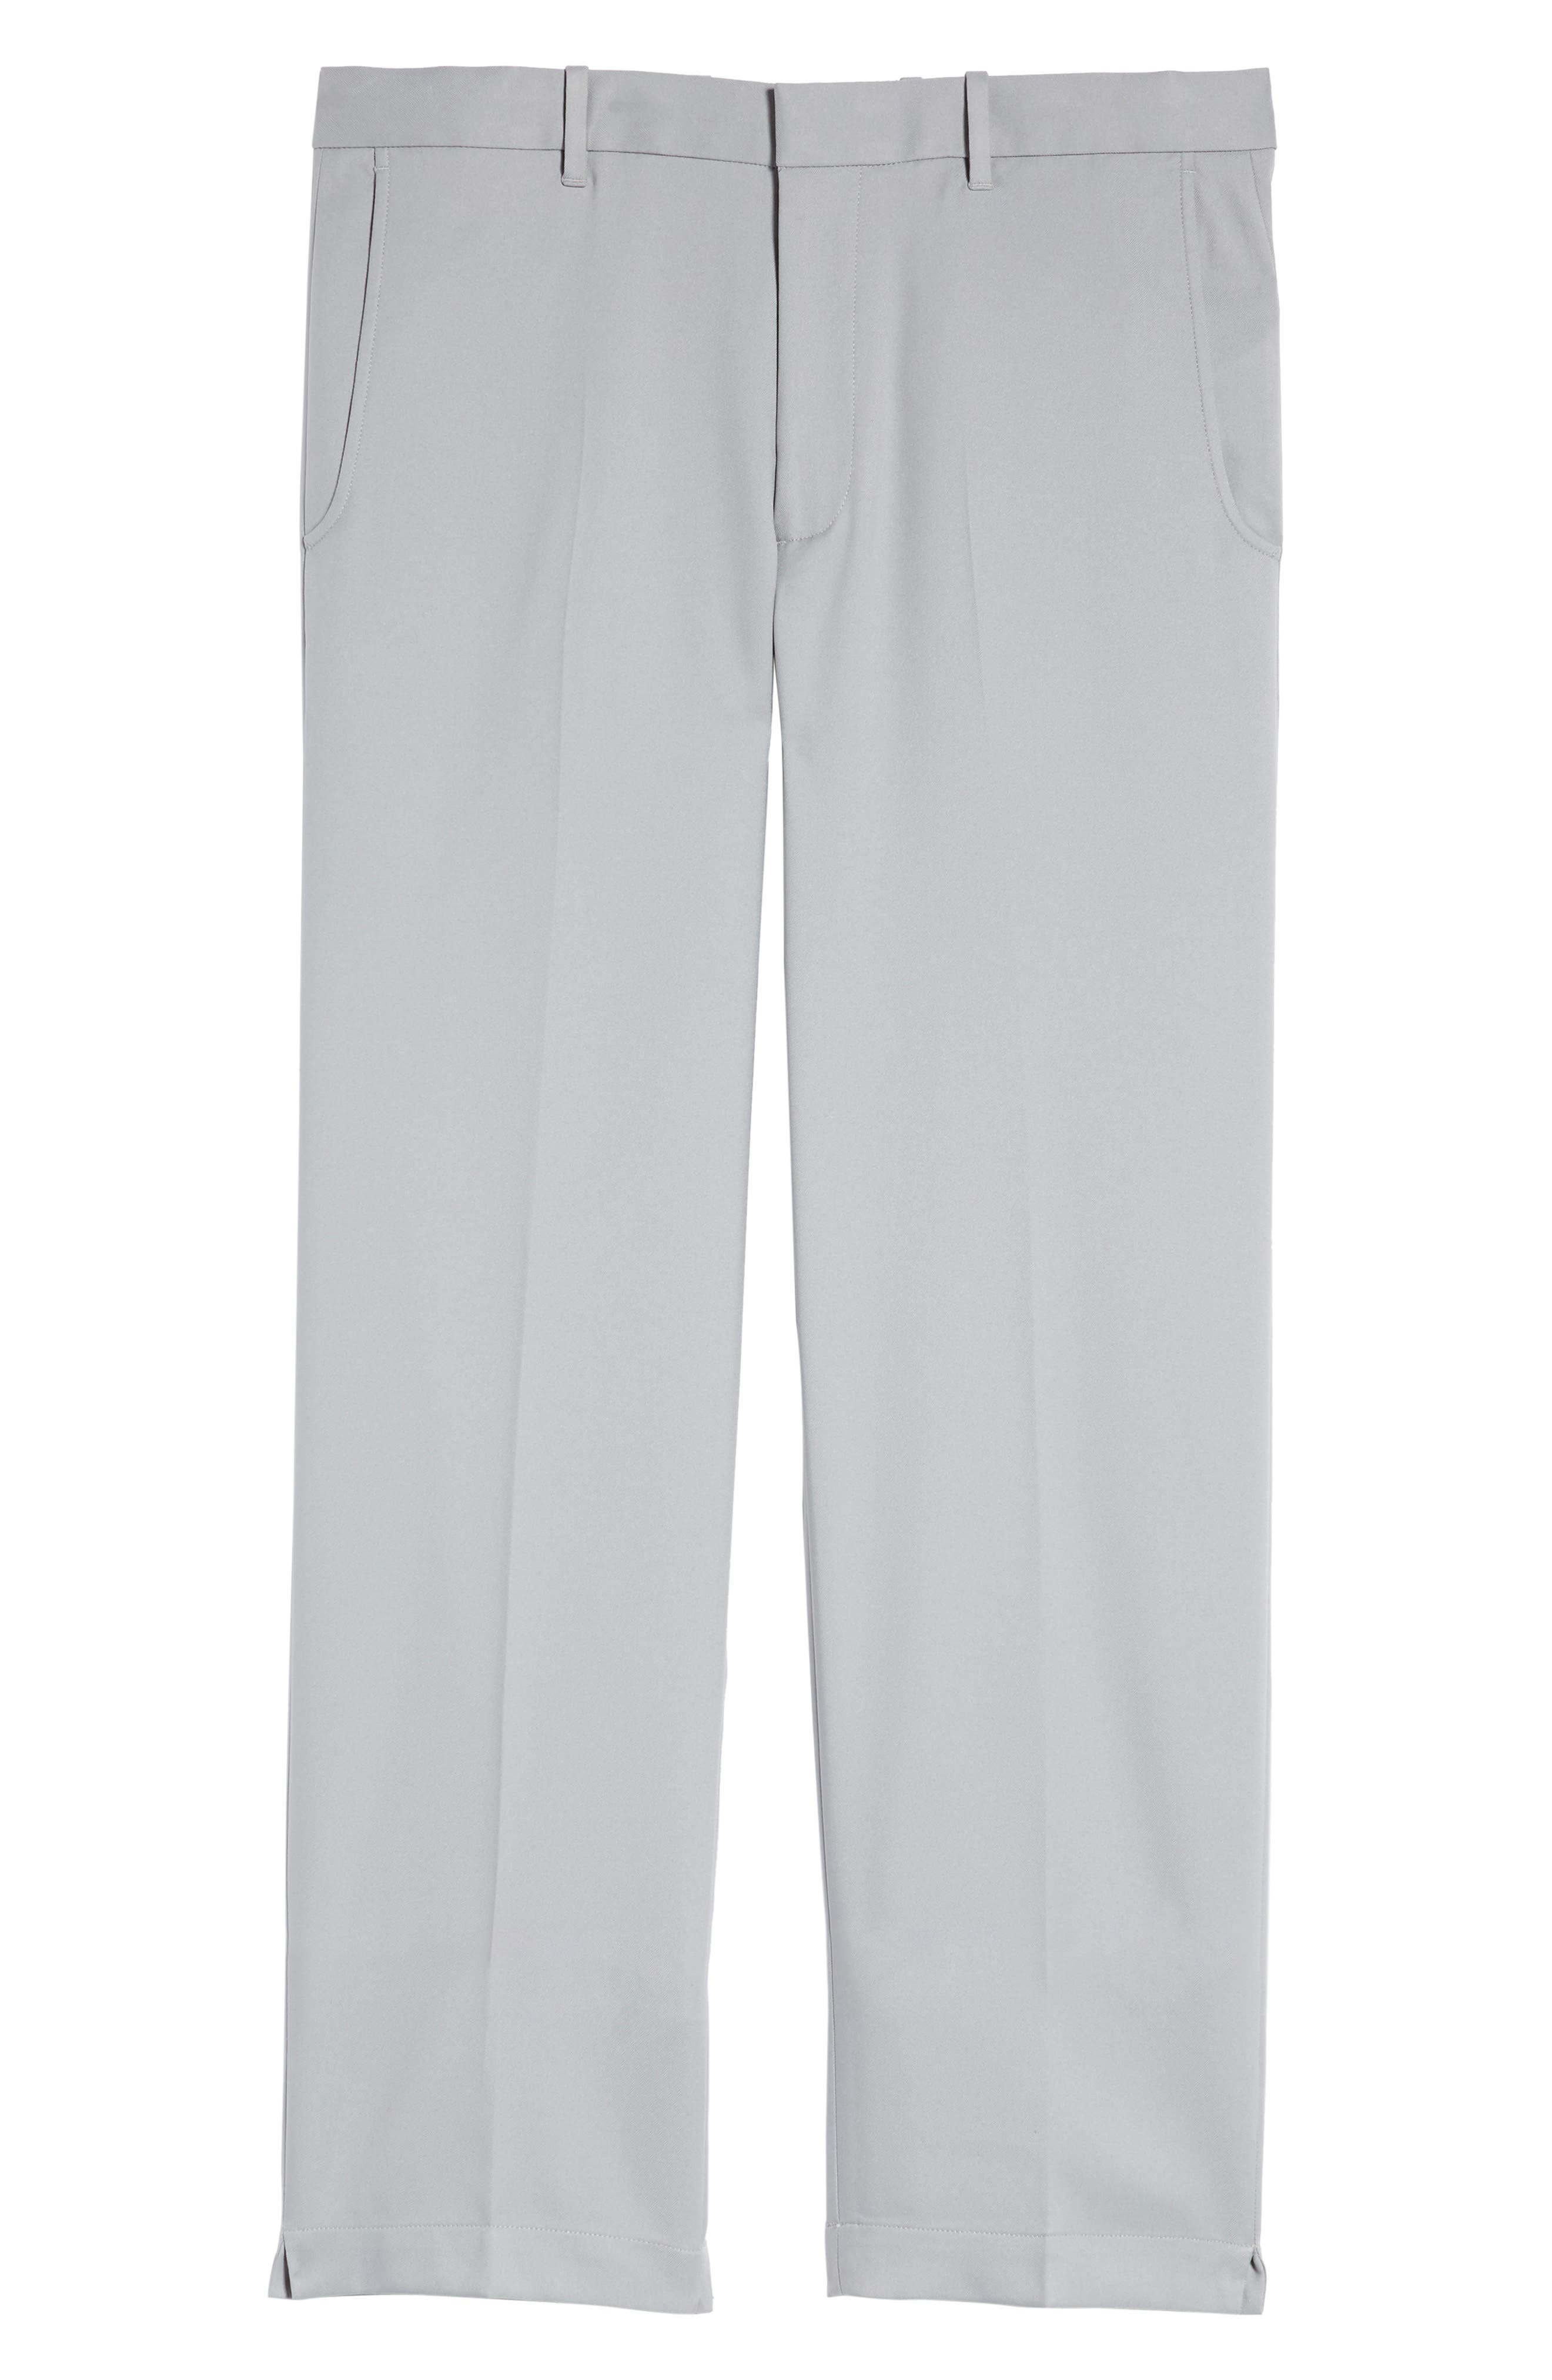 'Tech' Flat Front Wrinkle Free Golf Pants,                             Alternate thumbnail 6, color,                             052